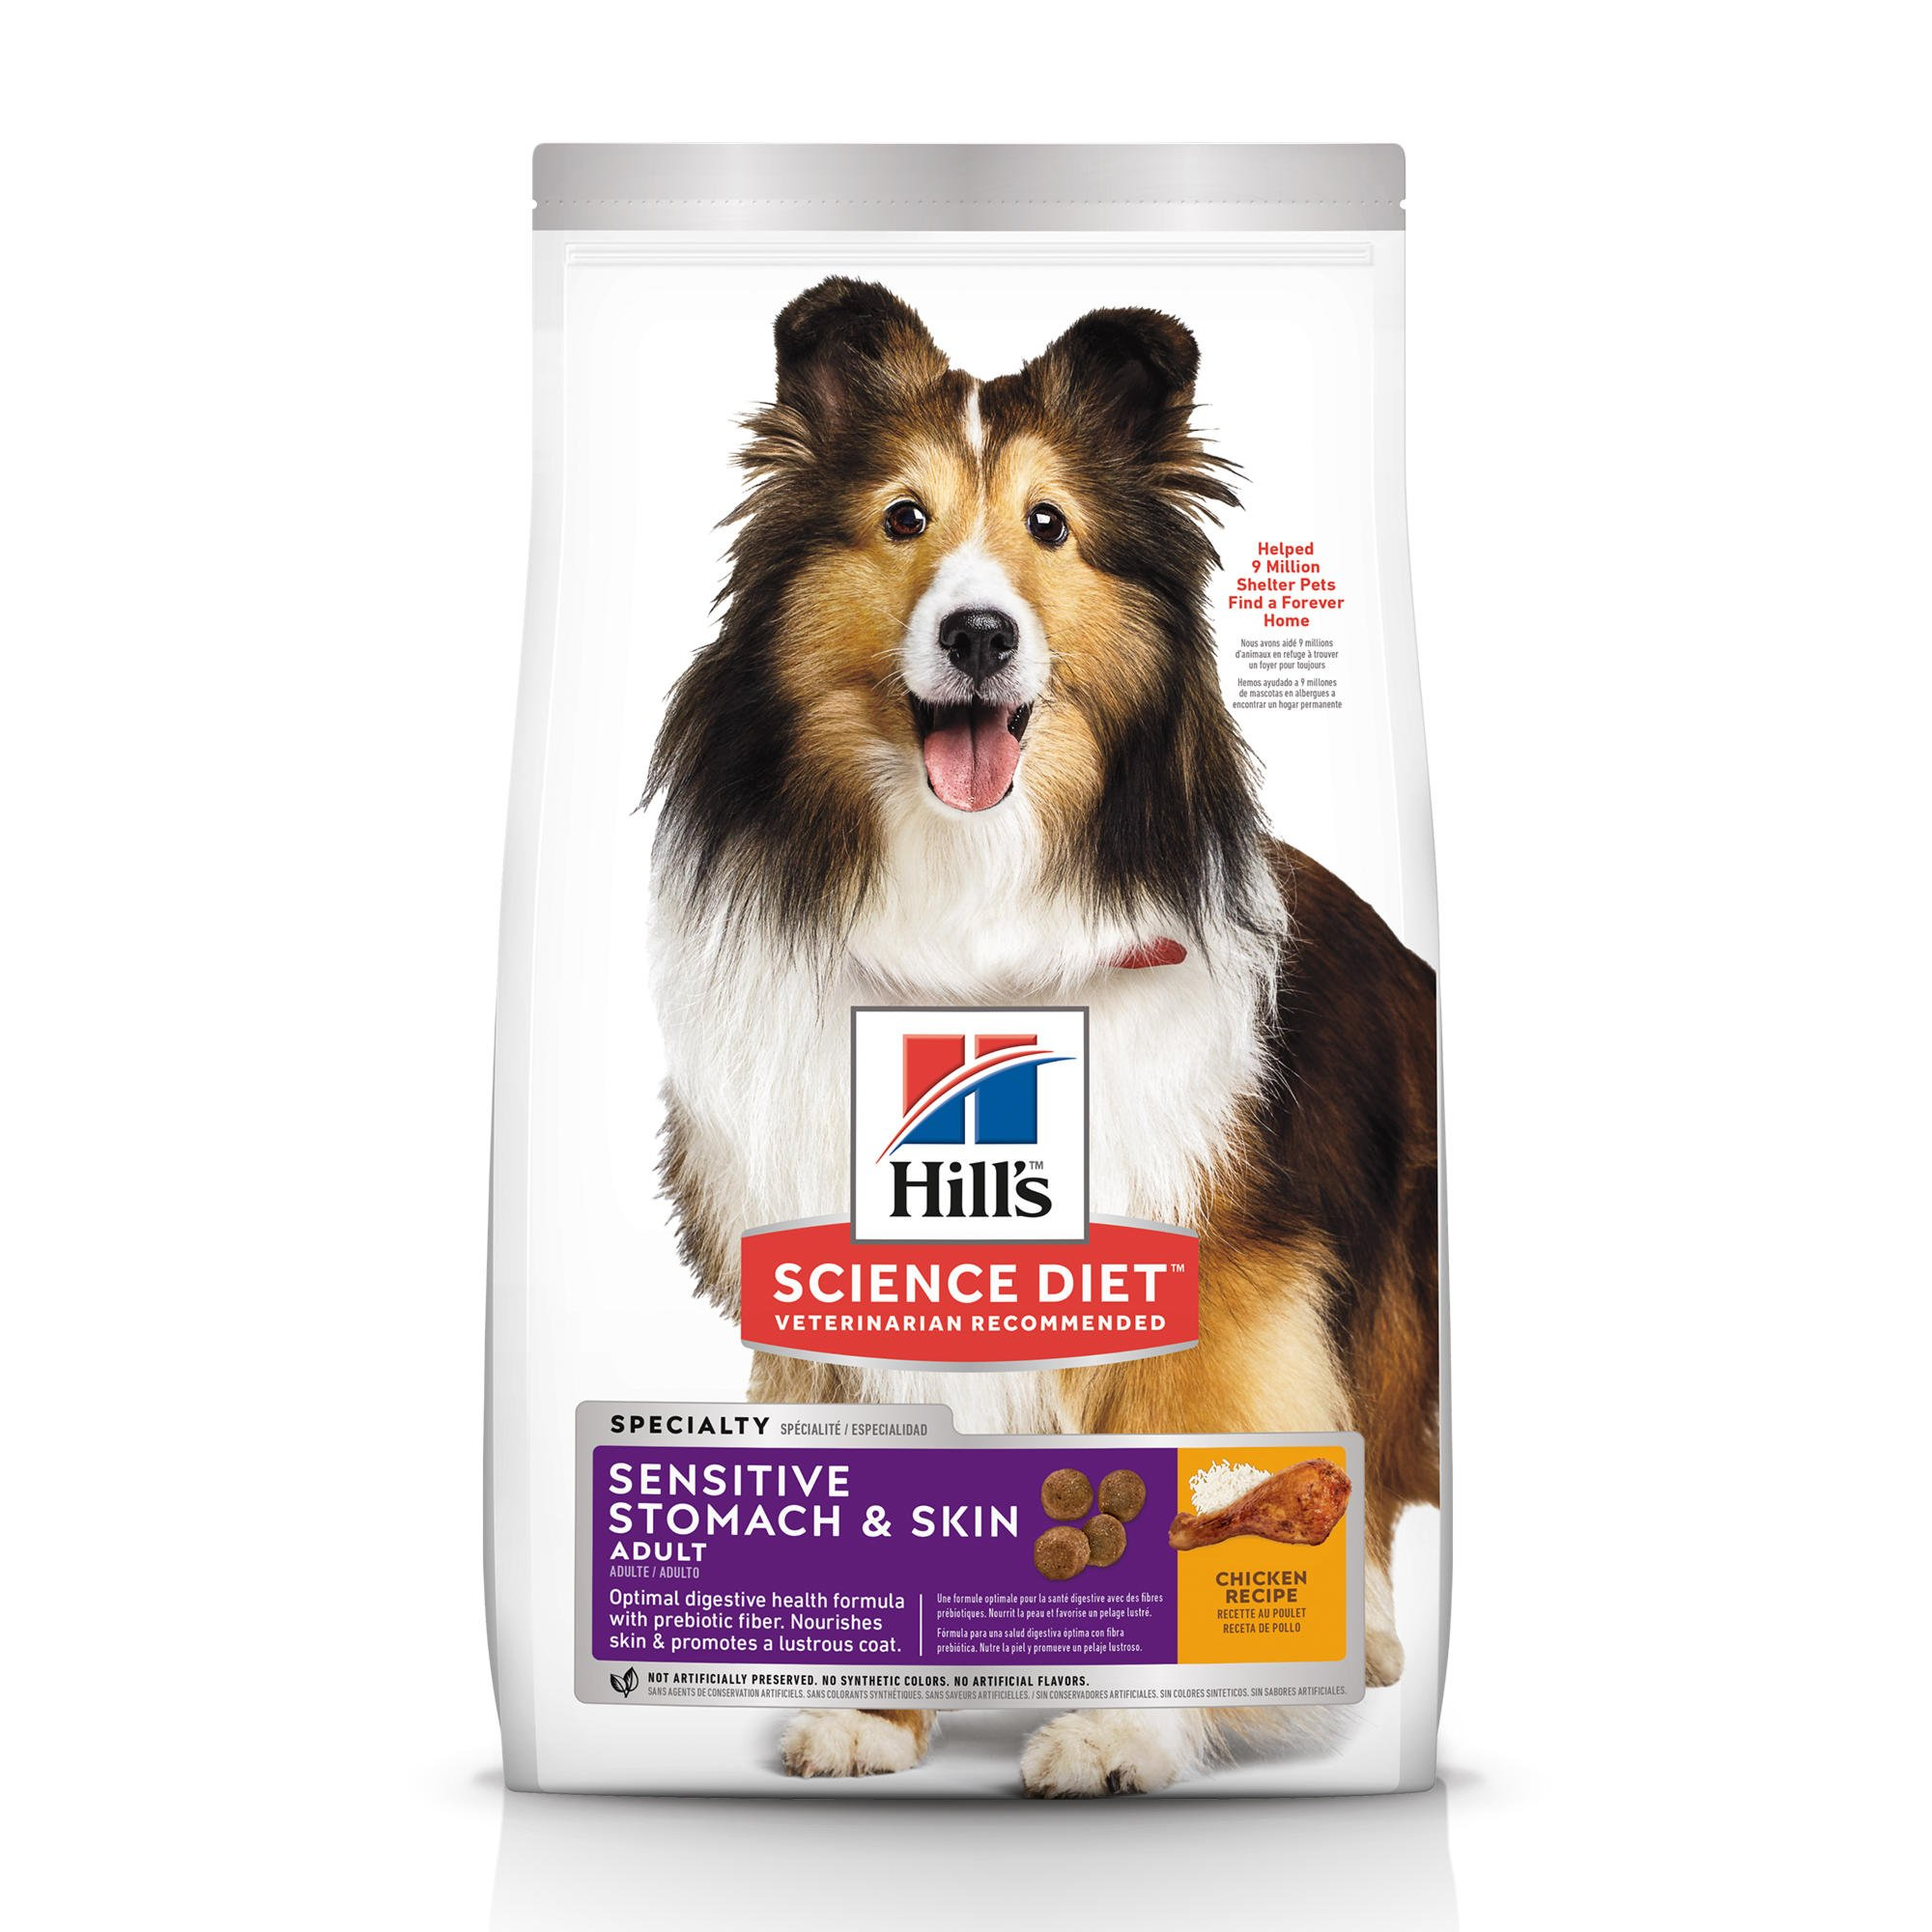 Best Small Dog Food For Sensitive Stomach